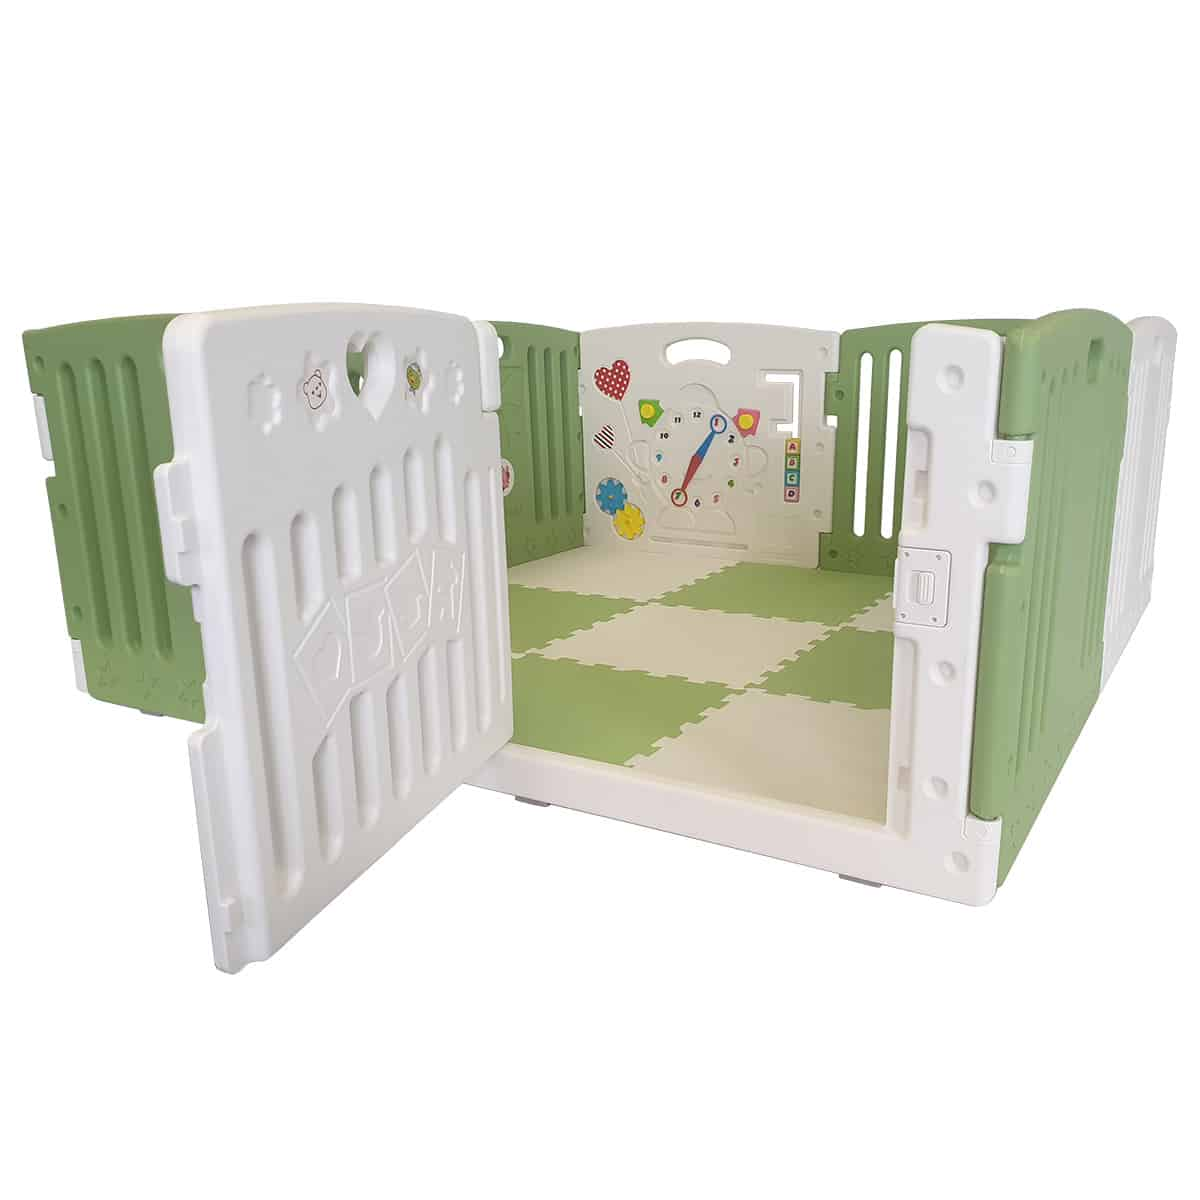 A safe and secure space for your baby to play